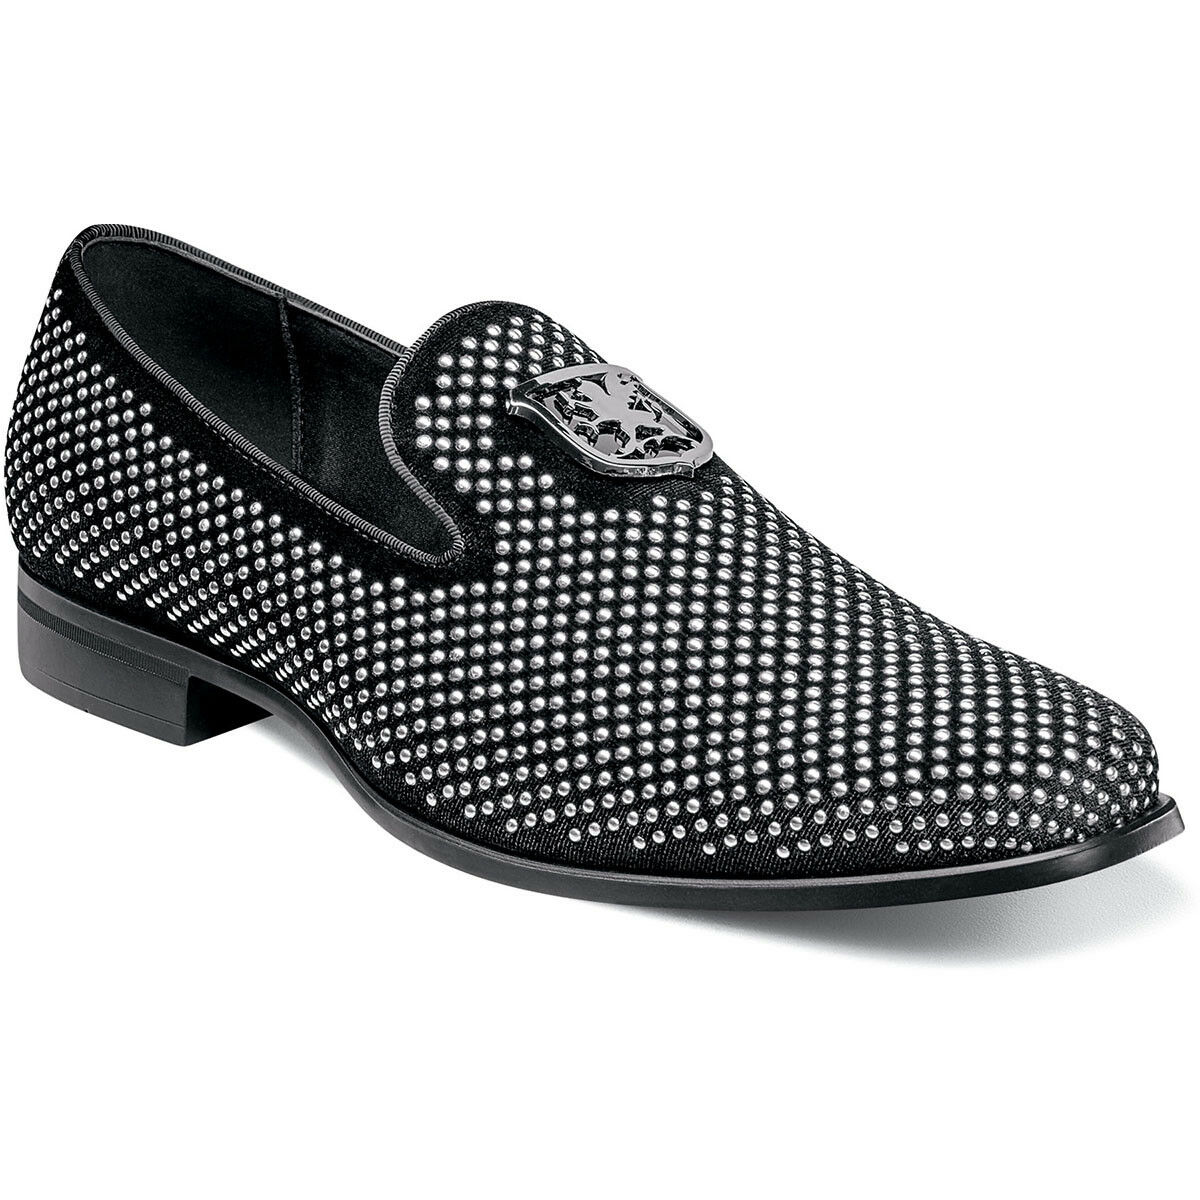 Stacy Adams Men's shoes Swagger Studded Slip On Black and Silver 25228-042